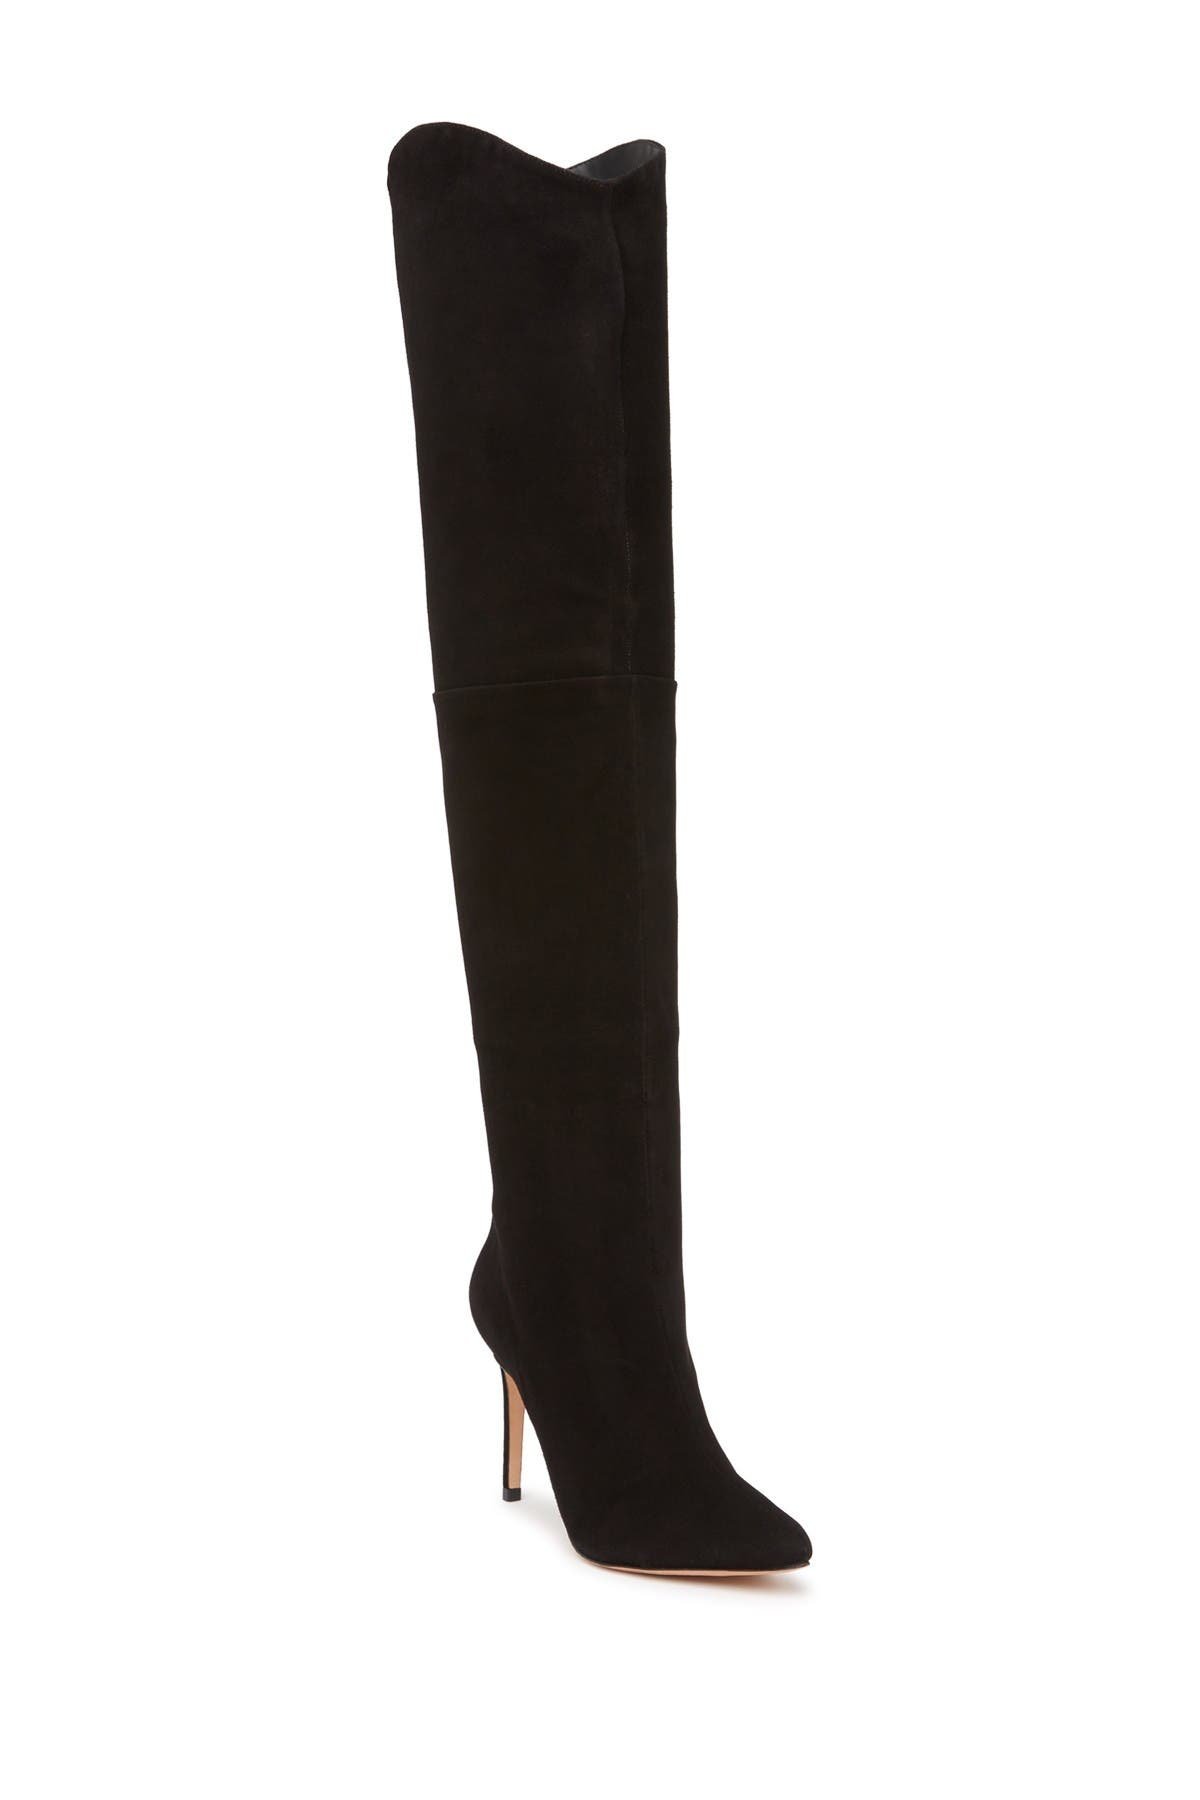 Image of Schutz Anamaria Suede Over the Knee Boot